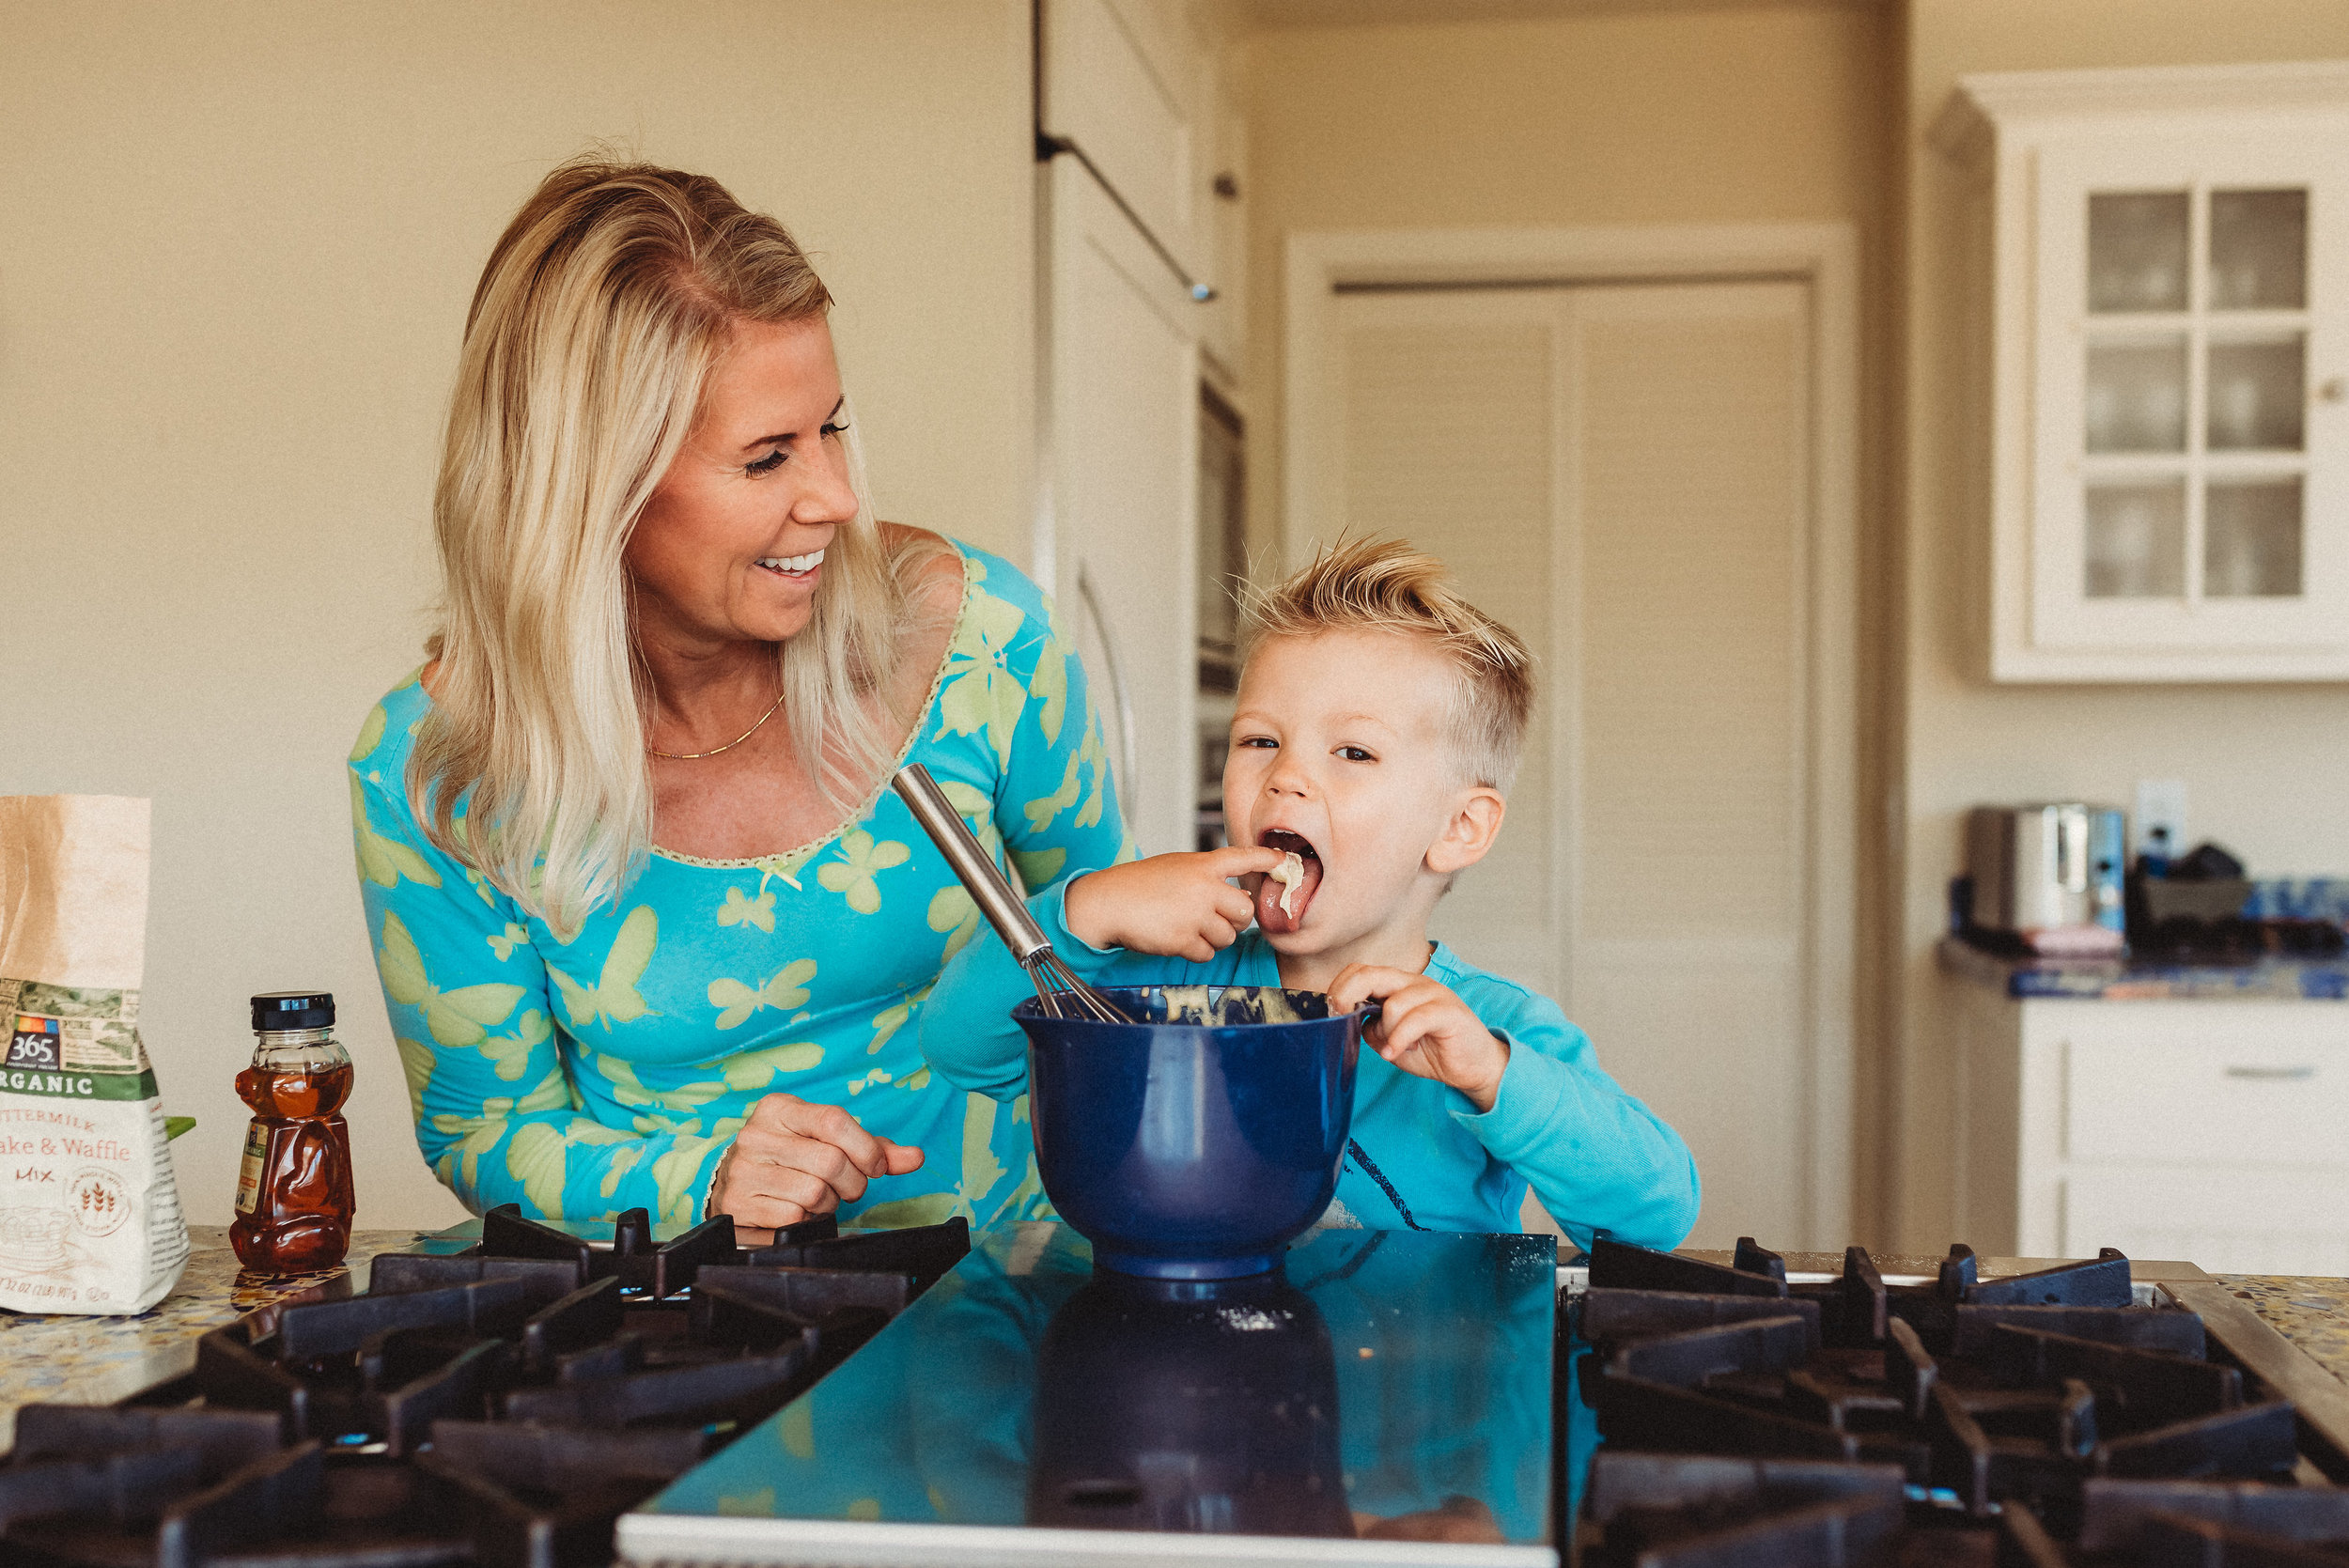 family pancakes morning routine mom of two toddlers pj mornings family time quality time12.jpg